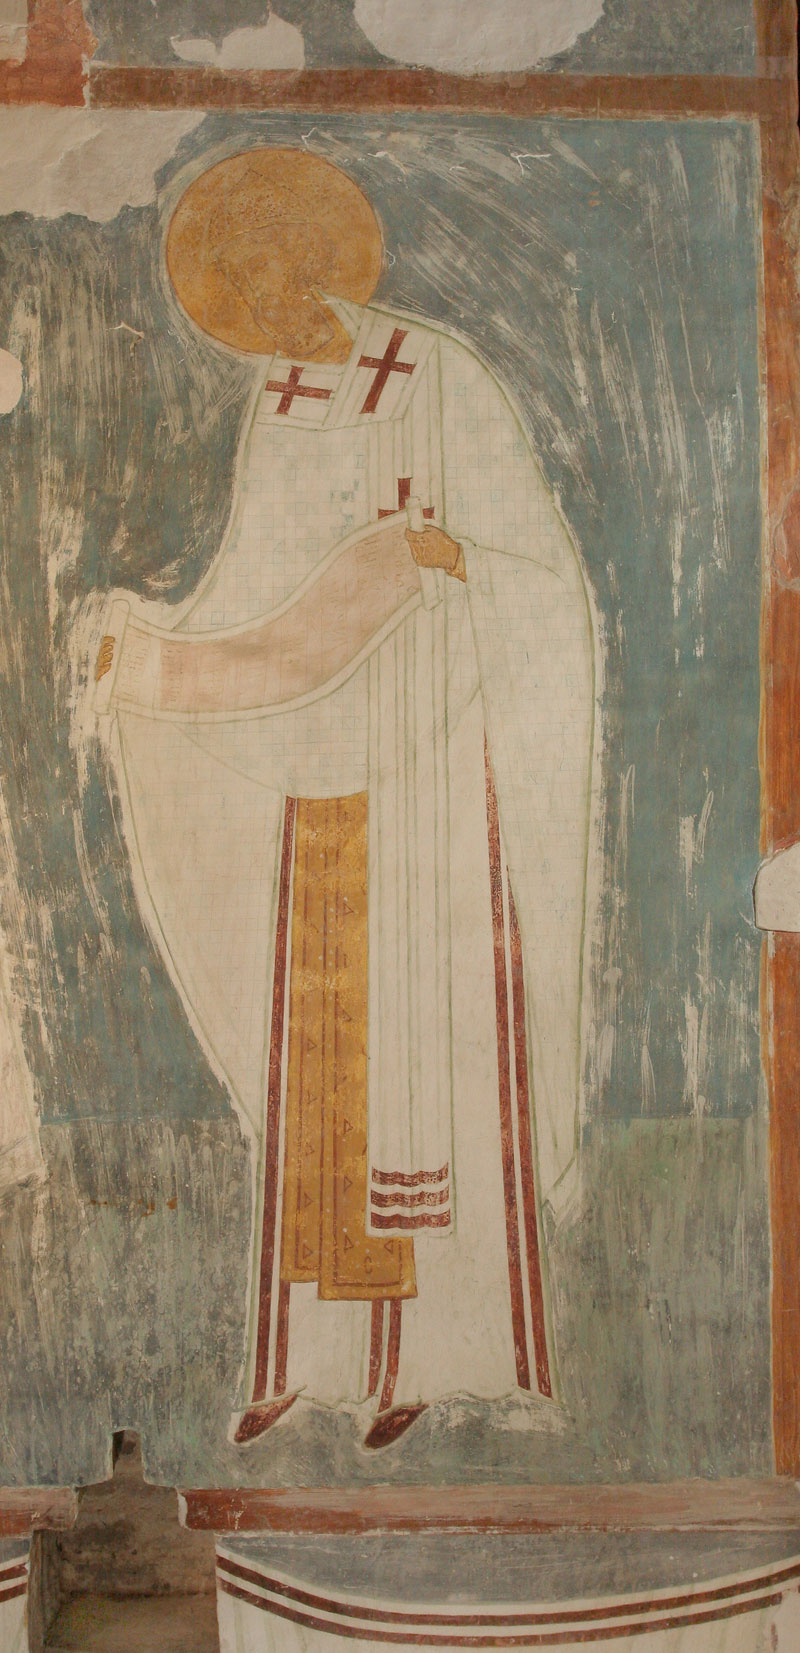 Dionisy's frescoes. Saint Spyridon, Bishop of Trimyphunteia from The Liturgy of Church Fathers